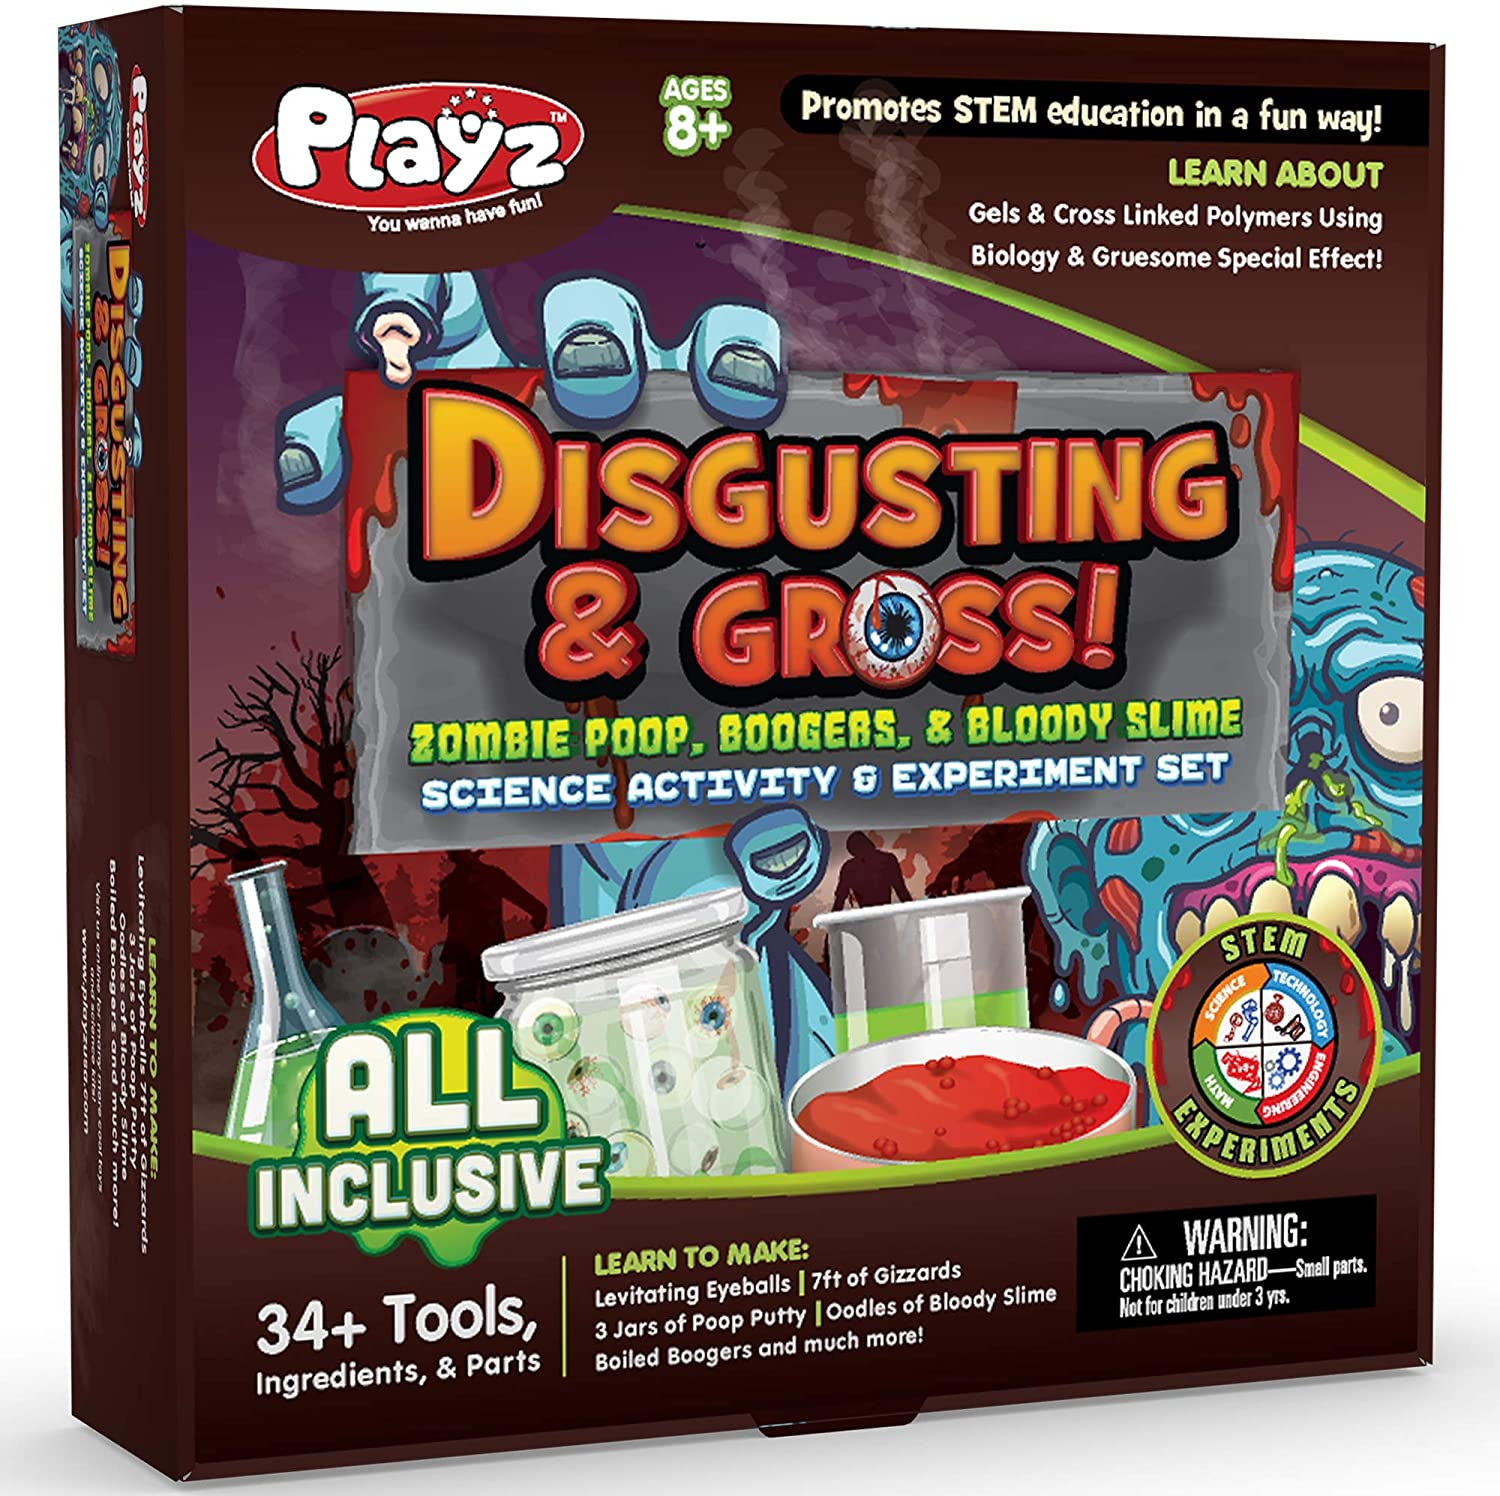 Playz Disgusting and Gross Zombie Farts, Boogers and Blood Slime Science Set